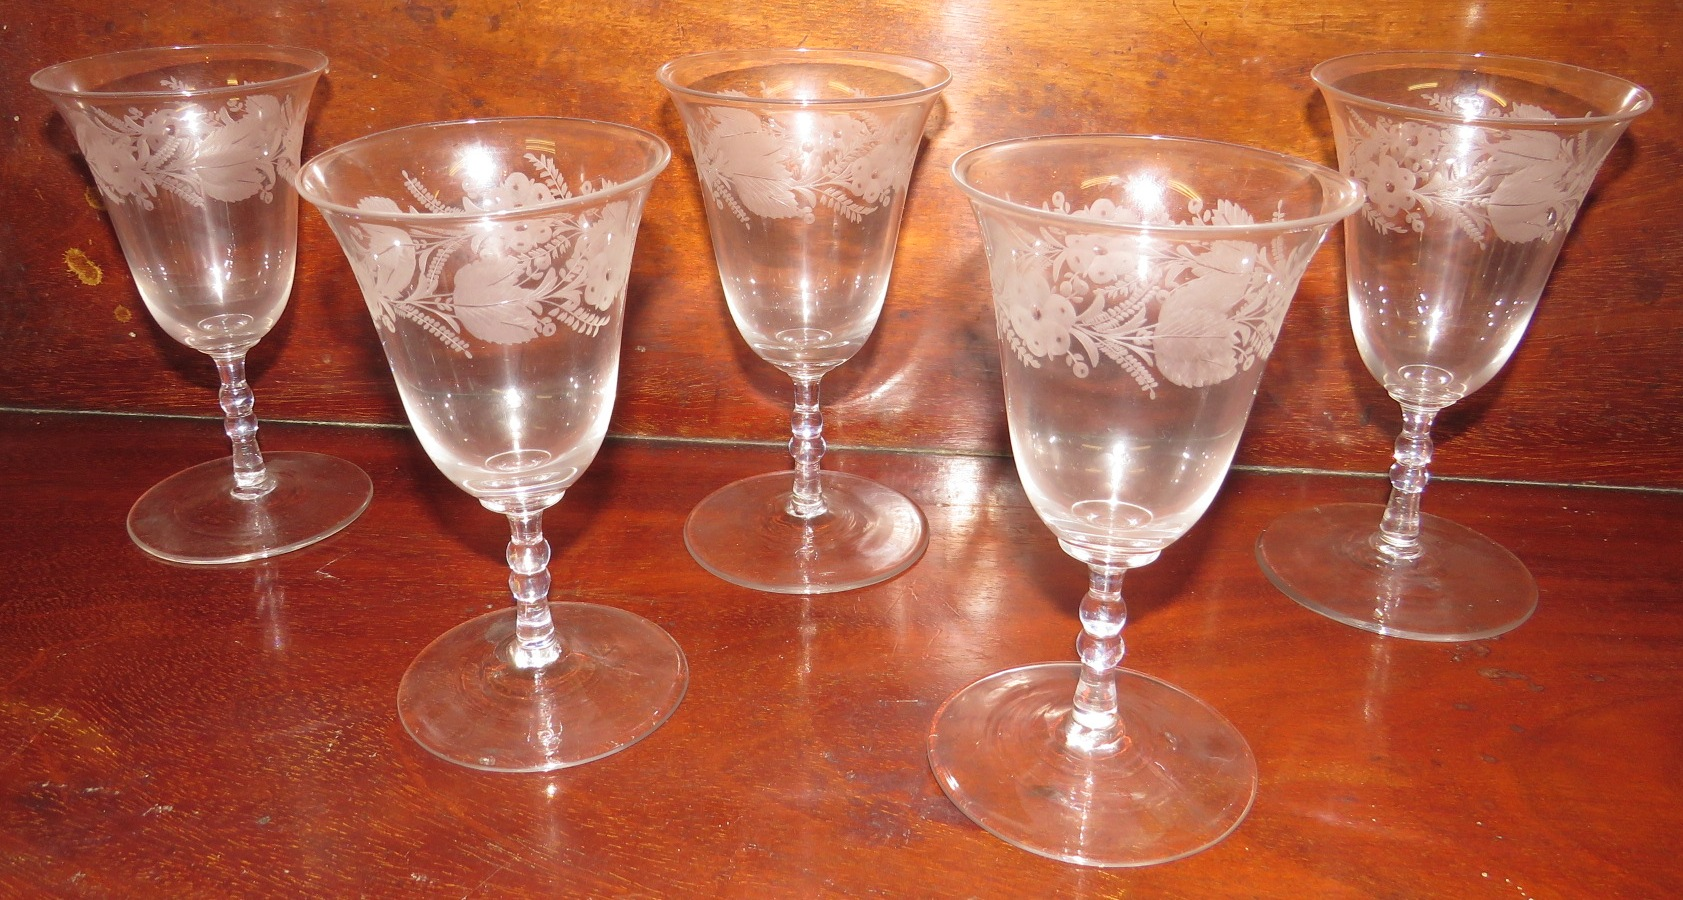 Lot 117 - Five 19th century wine glasses with bell-shape bowls etched with a band of flowers and leaves, the